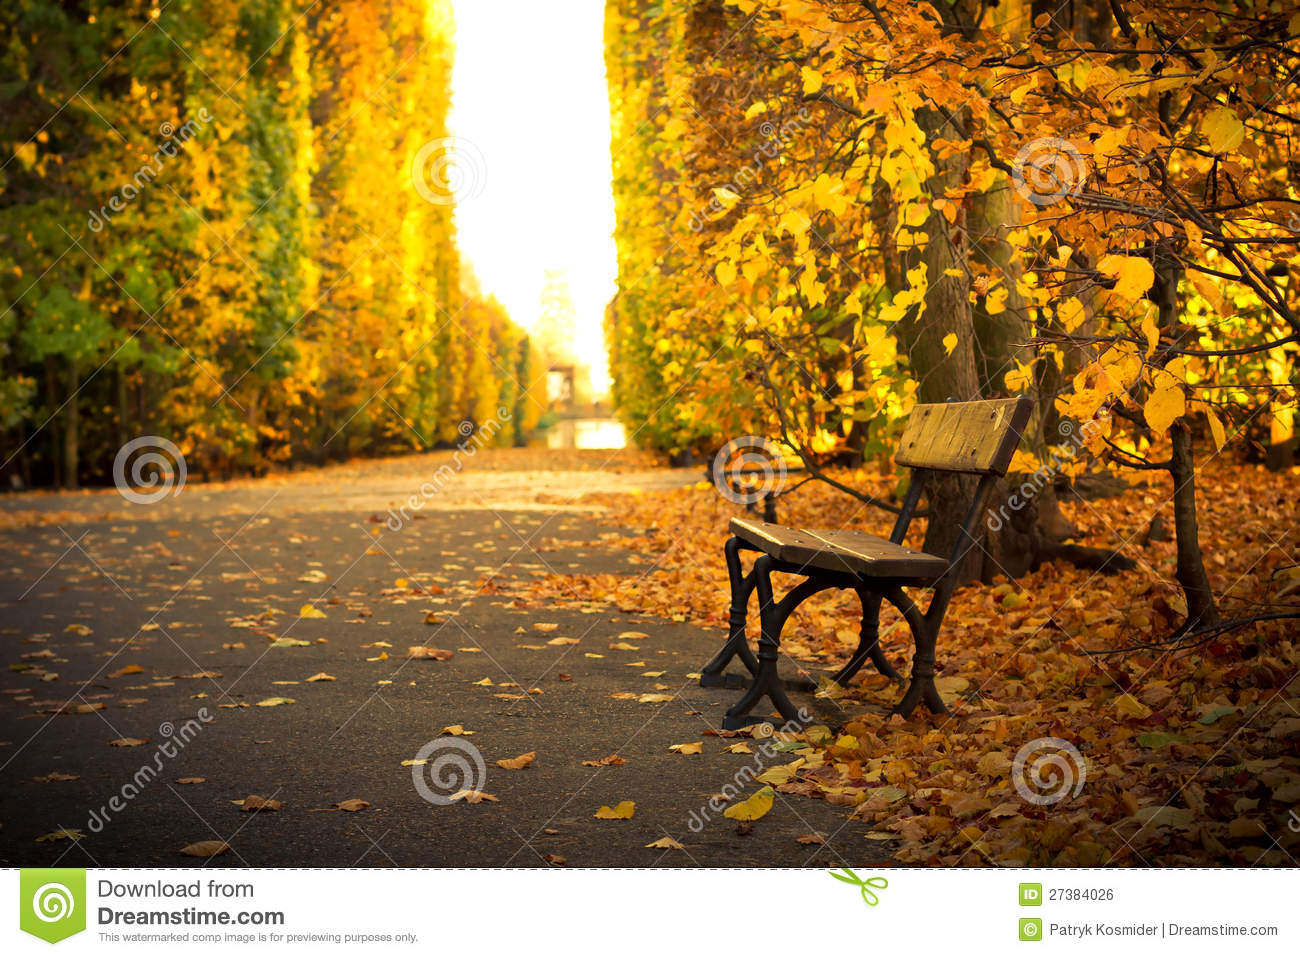 Empty Bench In Beautiful Yellow Park Scenery Royalty Free Stock Image ...